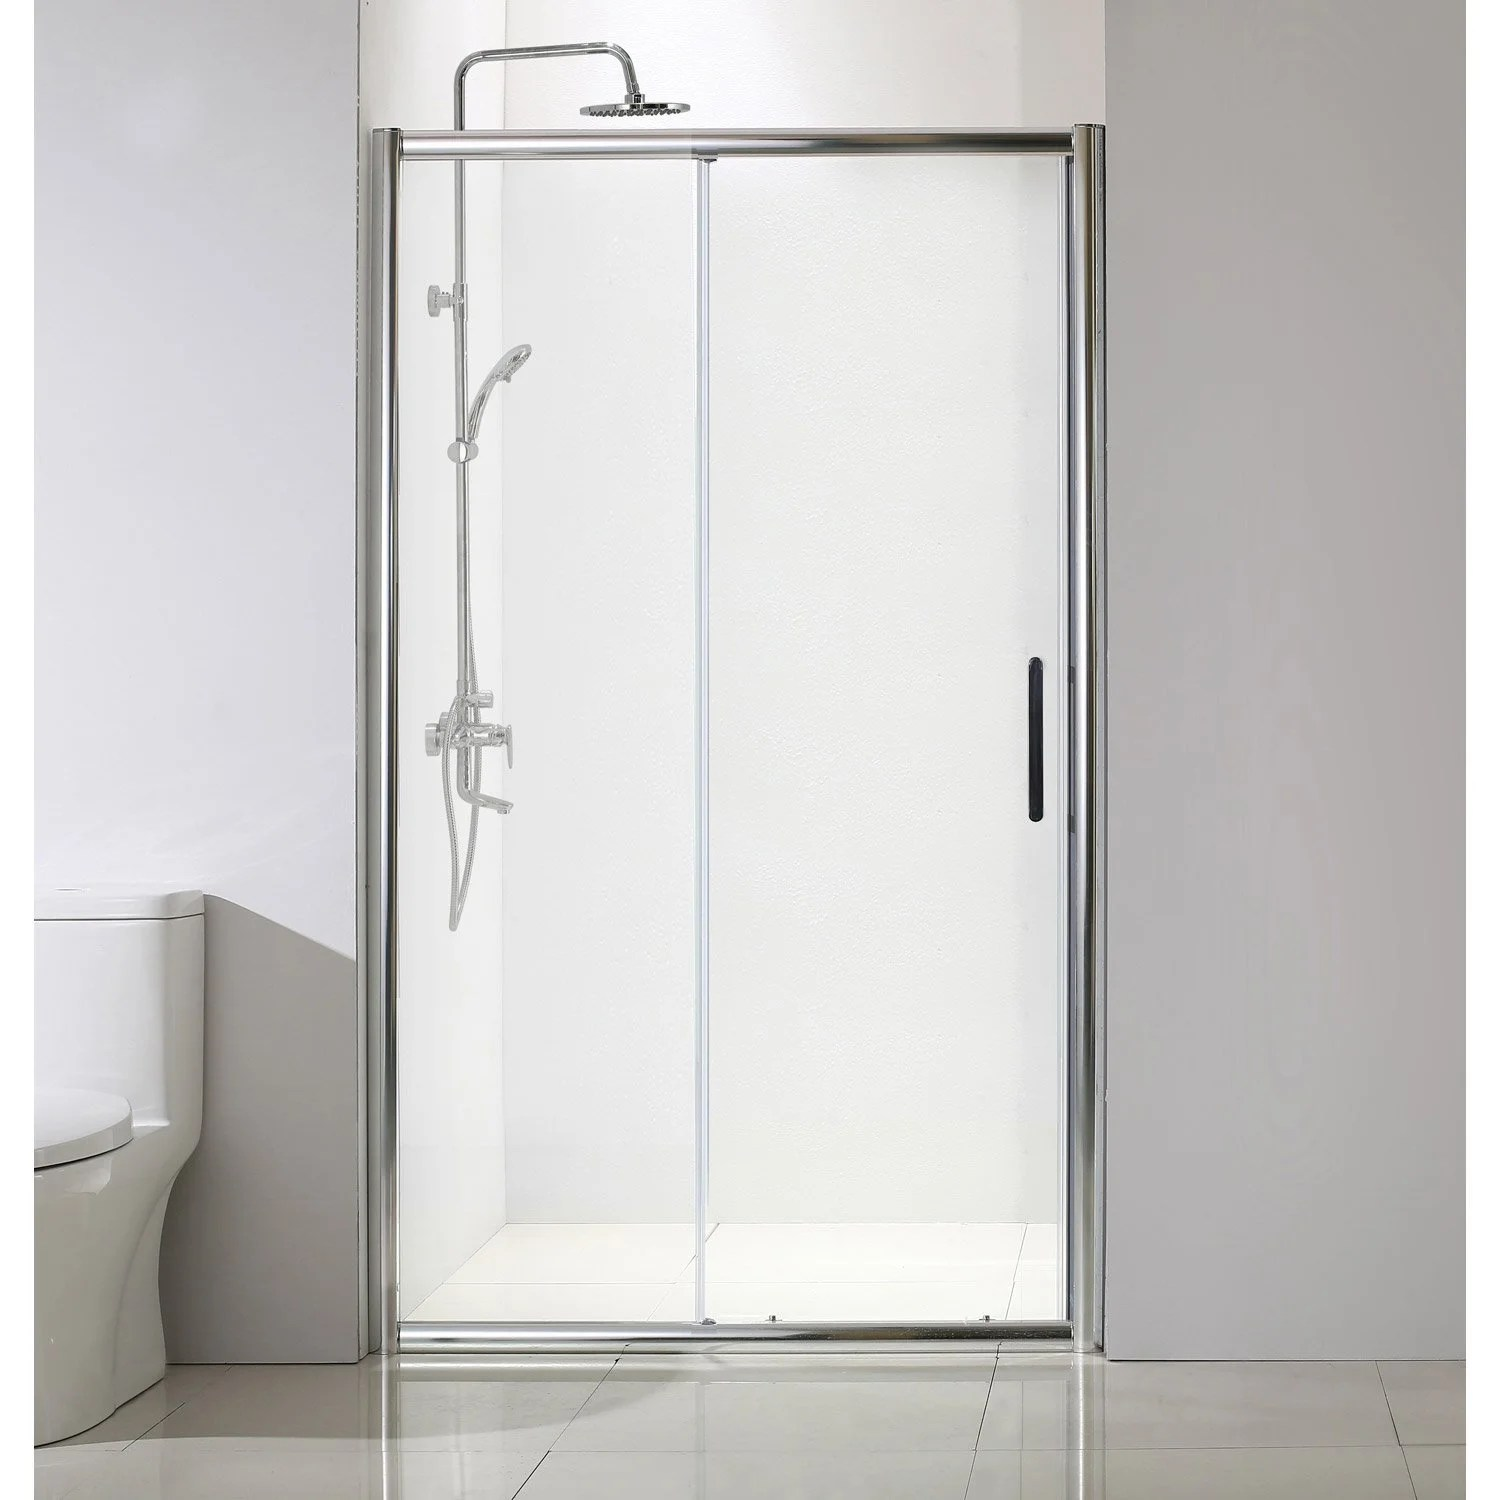 Porte Coulissante Magasin Porte De Douche Coulissante 120 Cm Transparent Quad